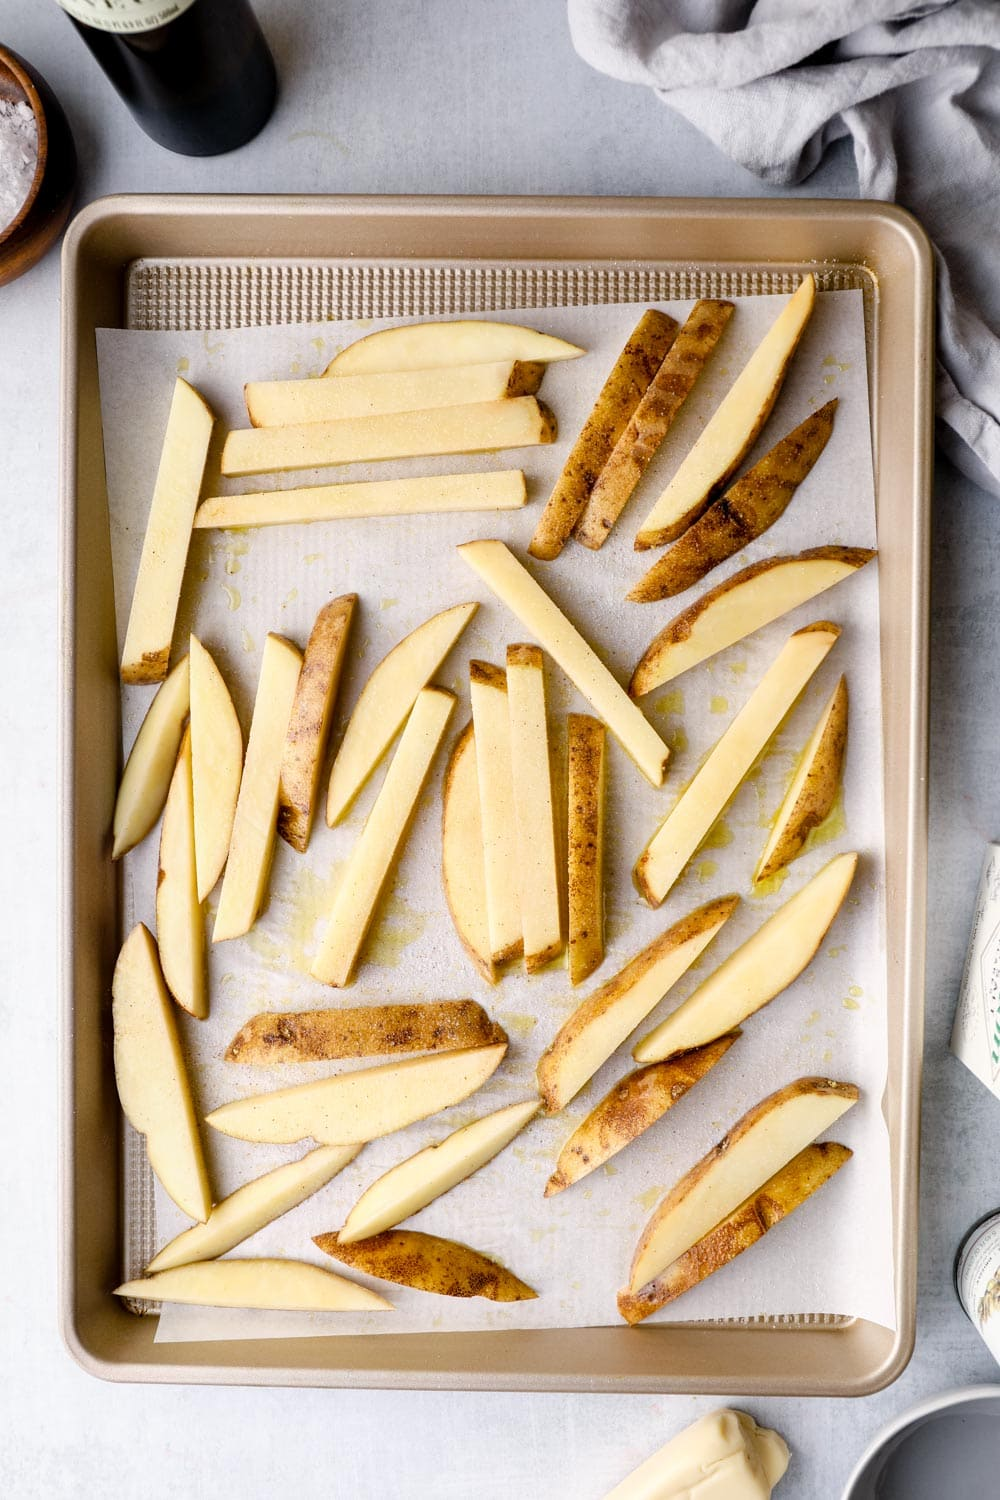 Potatoes cut into fries on a sheet pan with oil and salt.